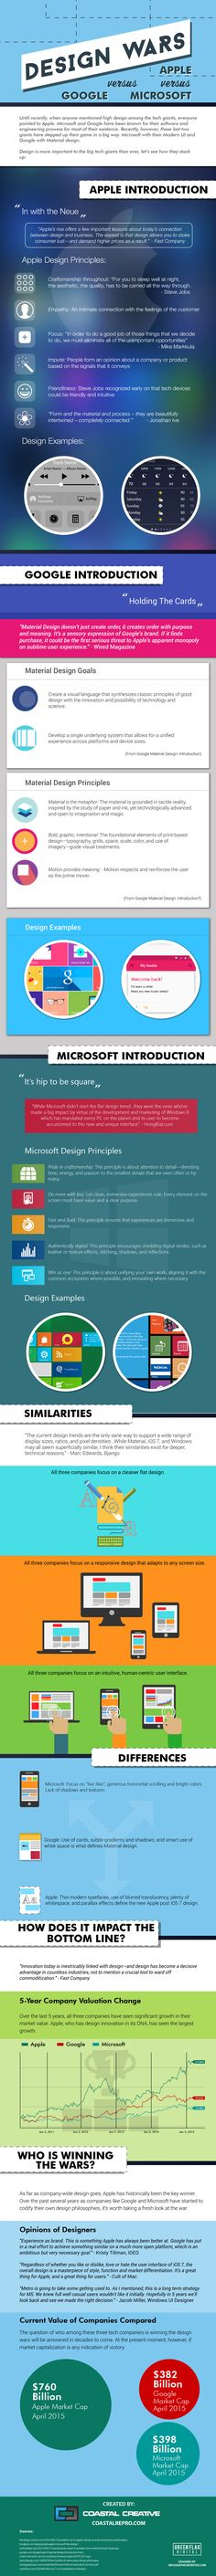 How do the Design Philosophies of Apple, Microsoft, and Google Differ?